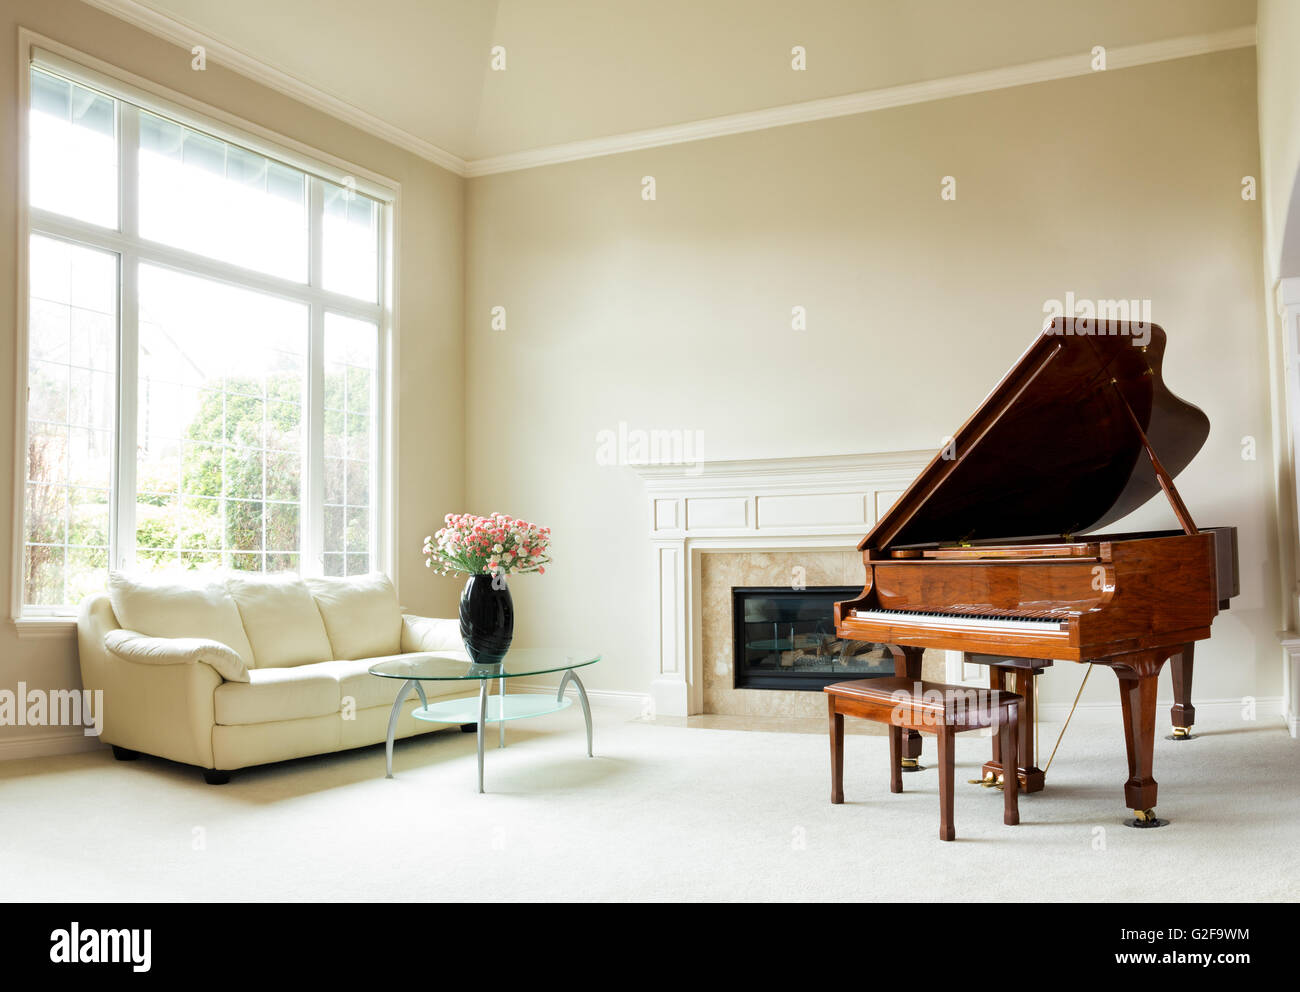 Living room with grand piano, fireplace, sofa and large window with ...